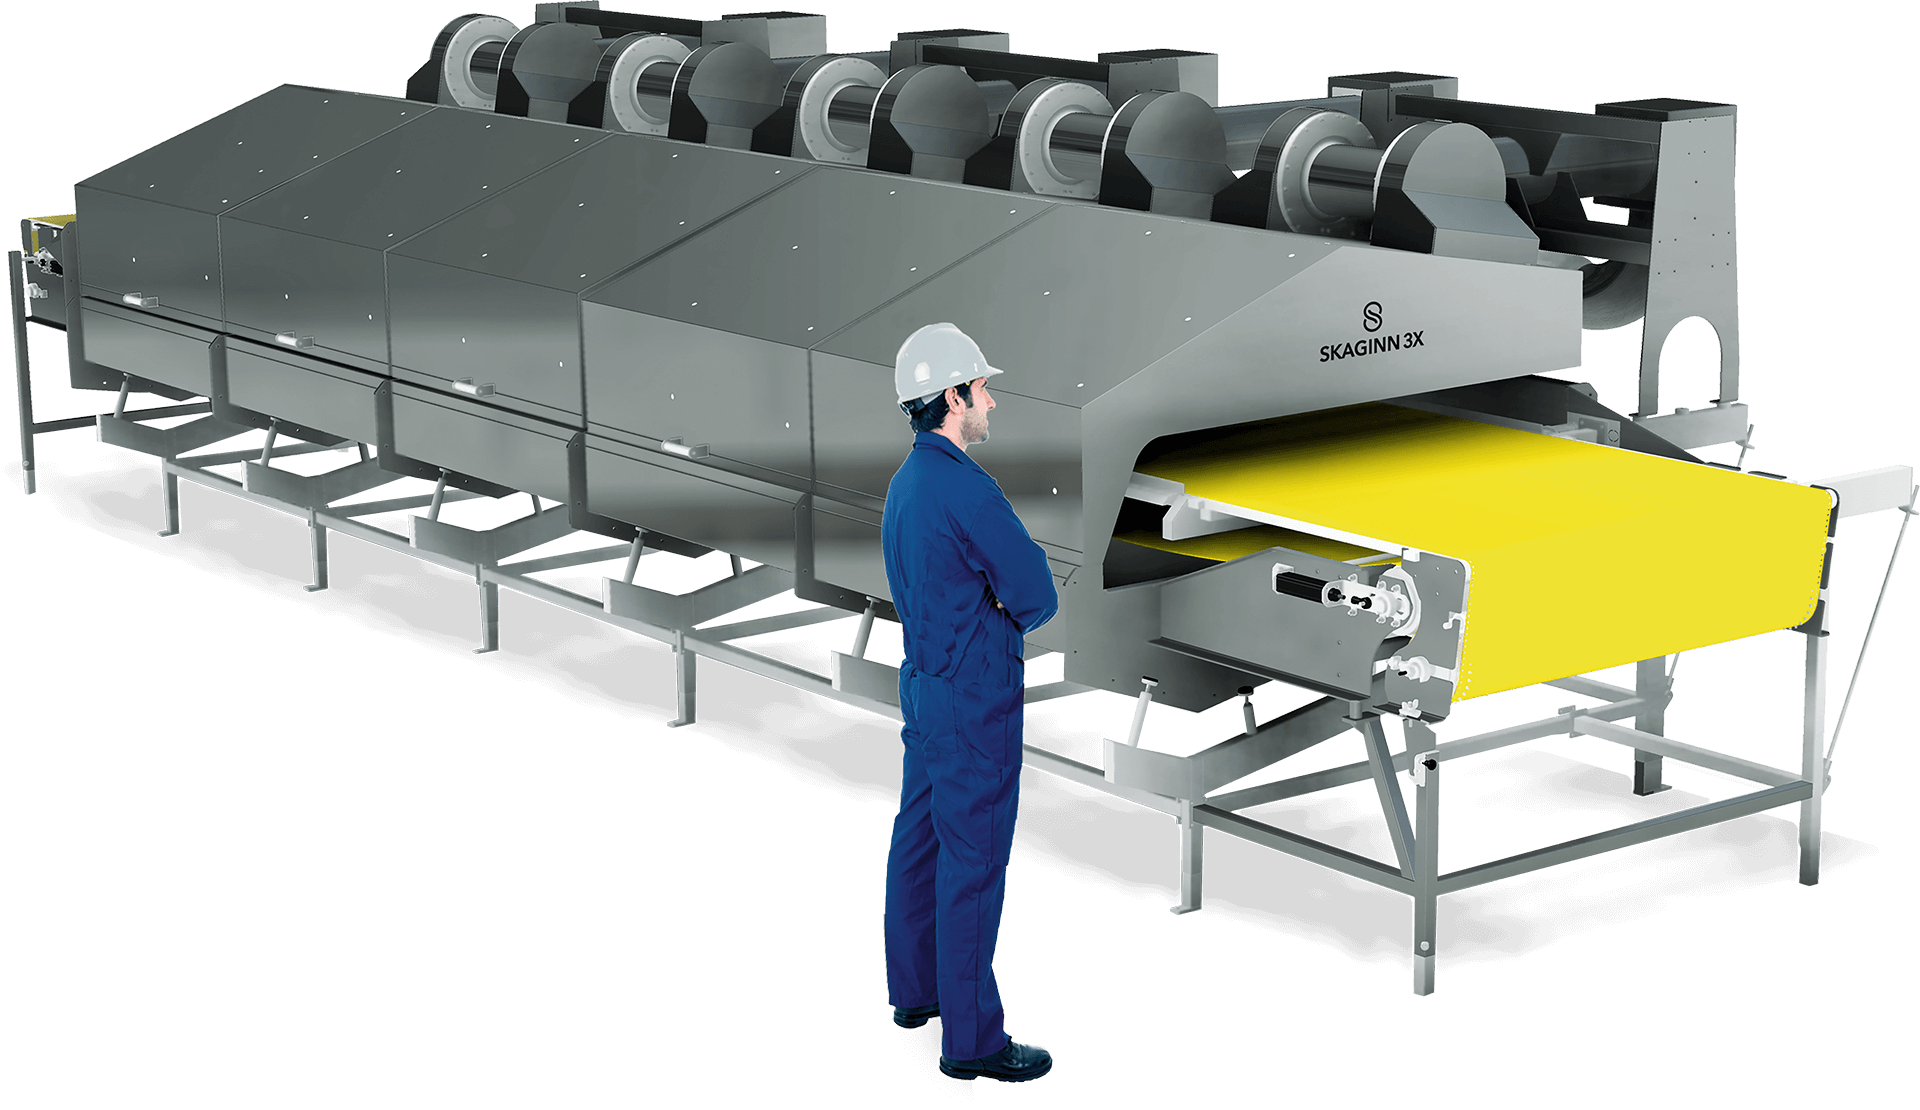 Modular design requiring minimal floor space and easy to integrate into existing production lines. Freezes from below, crust-freezes from above with airflow.